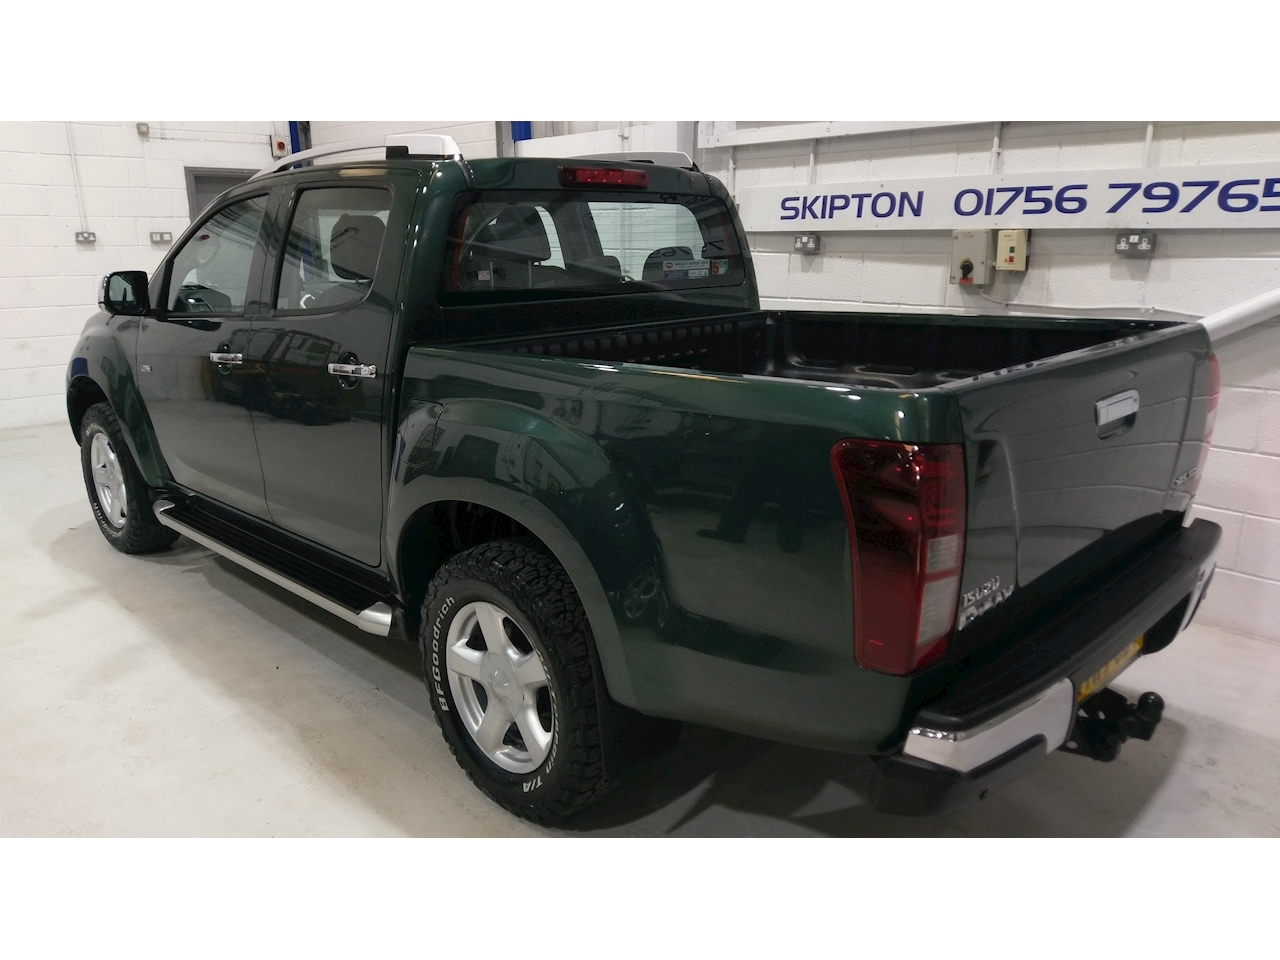 Isuzu D-Max Td Utah Dcb Pick-Up 2.5 Automatic Diesel